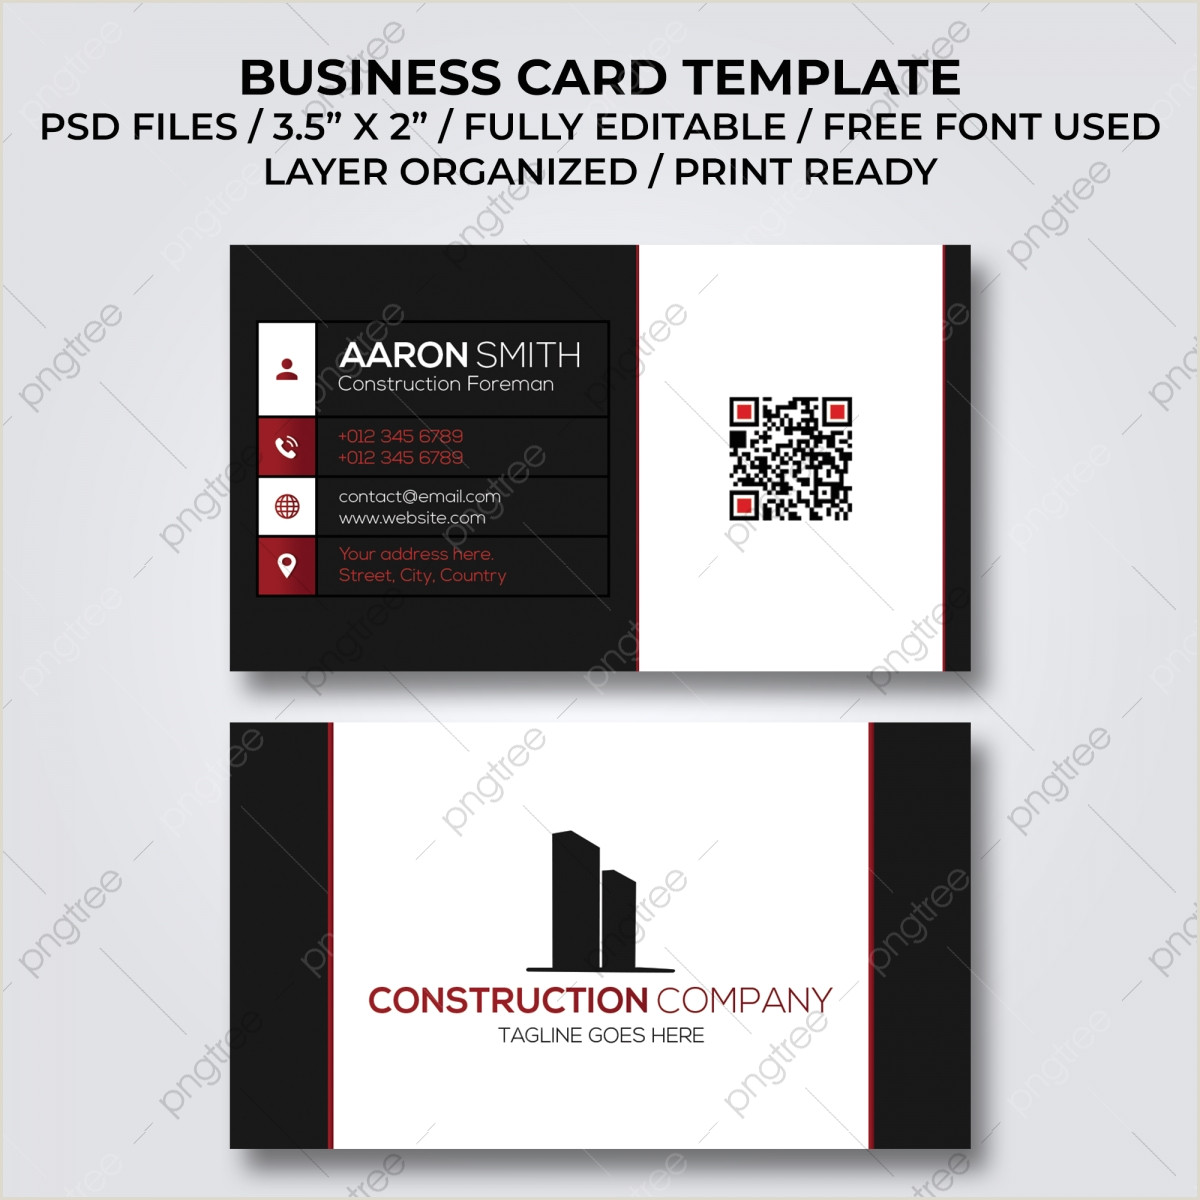 Construction Images For Business Cards Construction Business Card Png